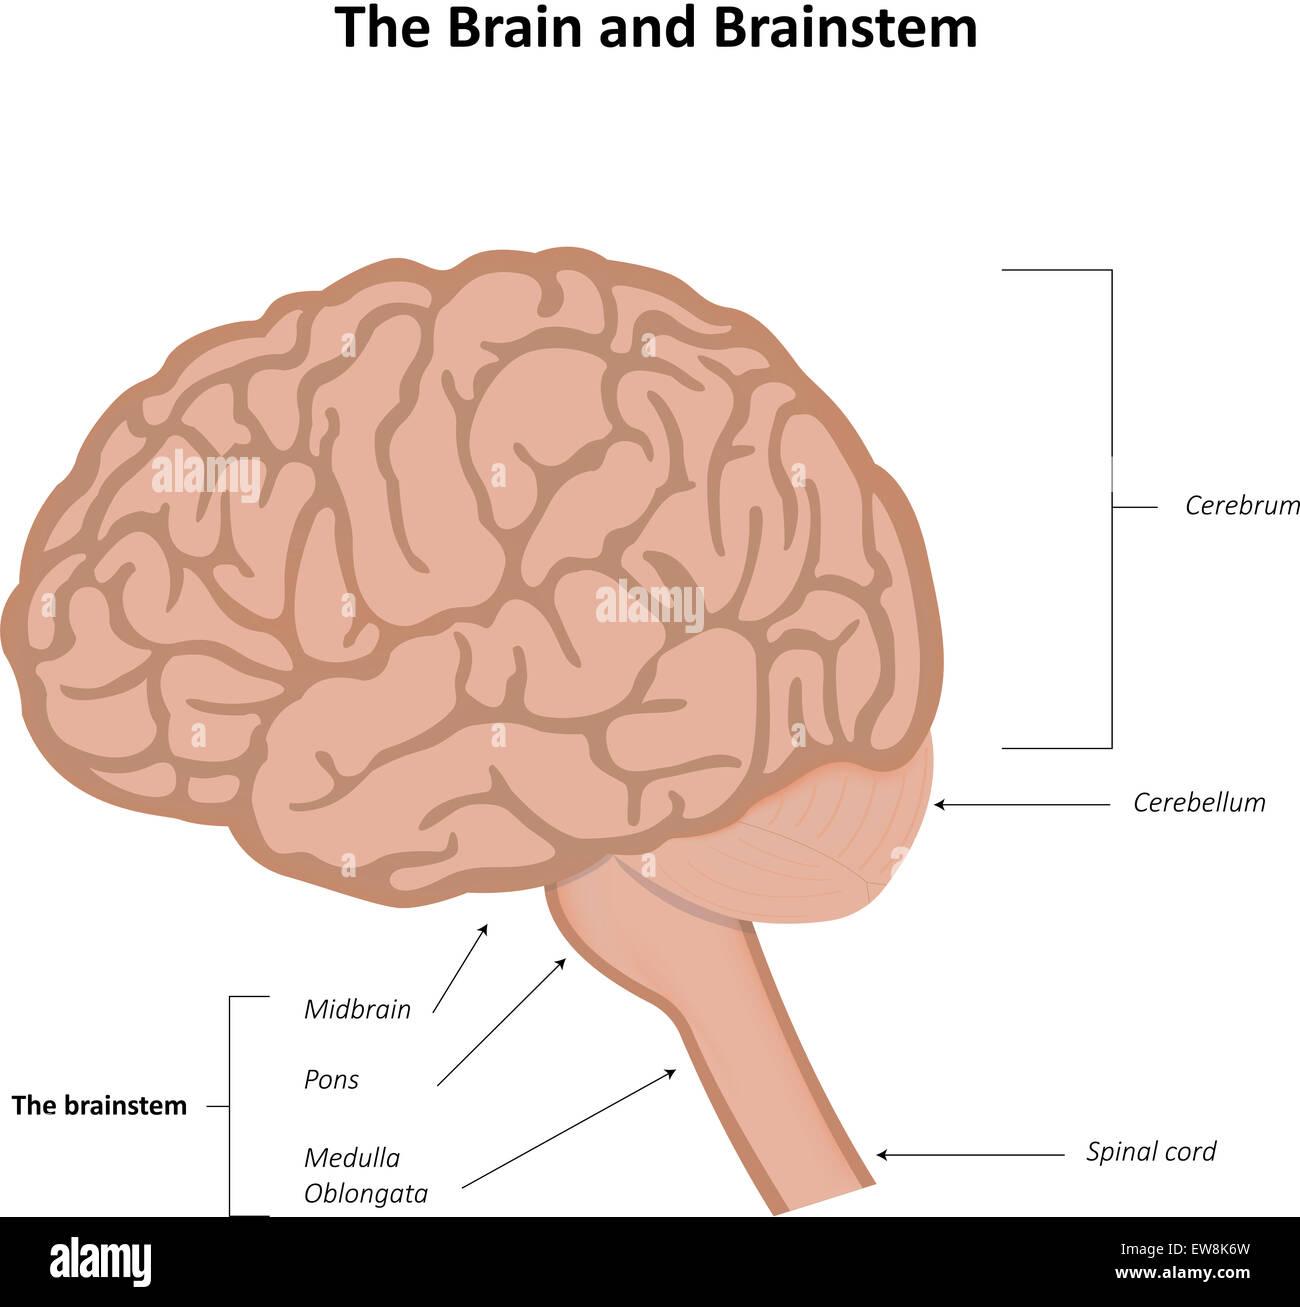 The Brain and Brainstem - Stock Image